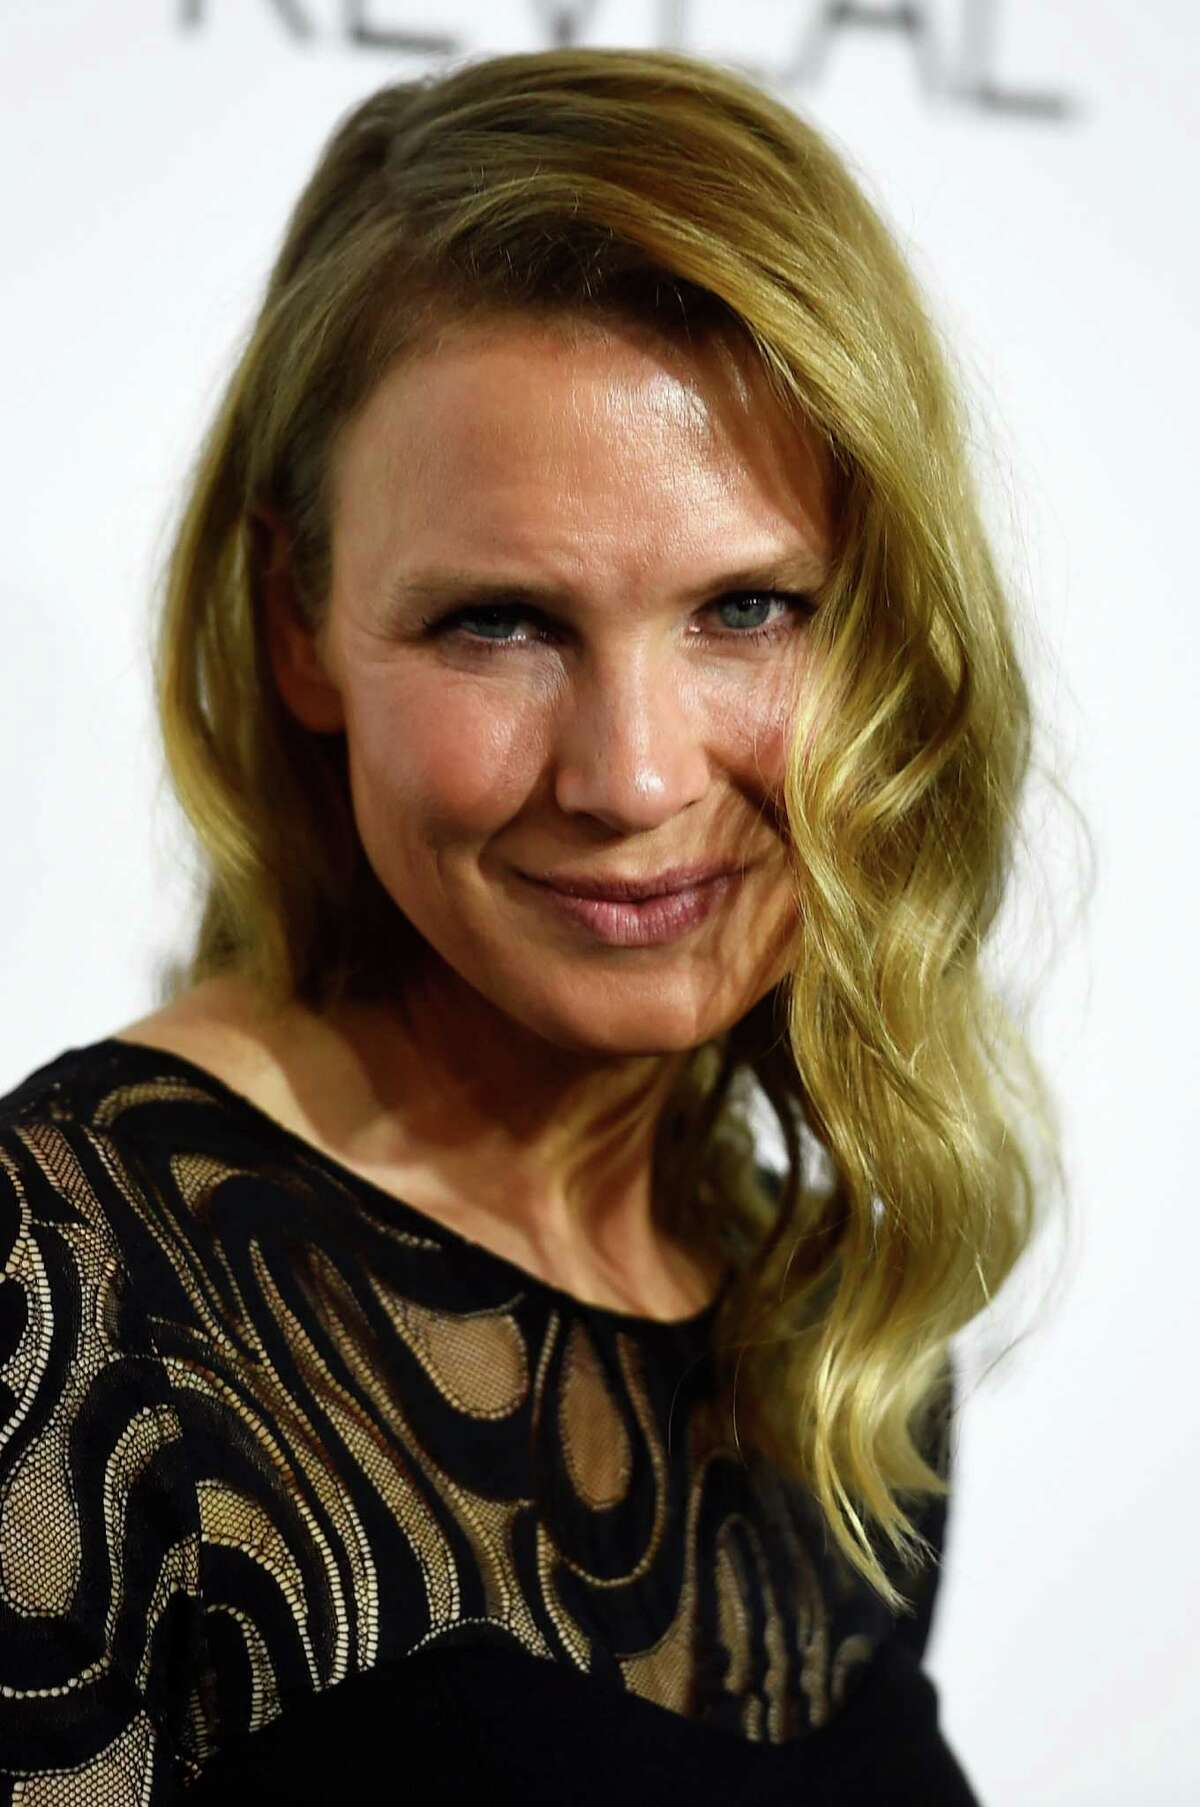 AFTER: Zellweger unveiled her new face on October 20, 2014 in Beverly Hills, California. Shocking, we know. The star looks more like Glenn Close or even Sarah Jessica Parker than her real self.She's not the only star to go under the knife. Take a look at other celebs who are reported to have had plastic surgery.